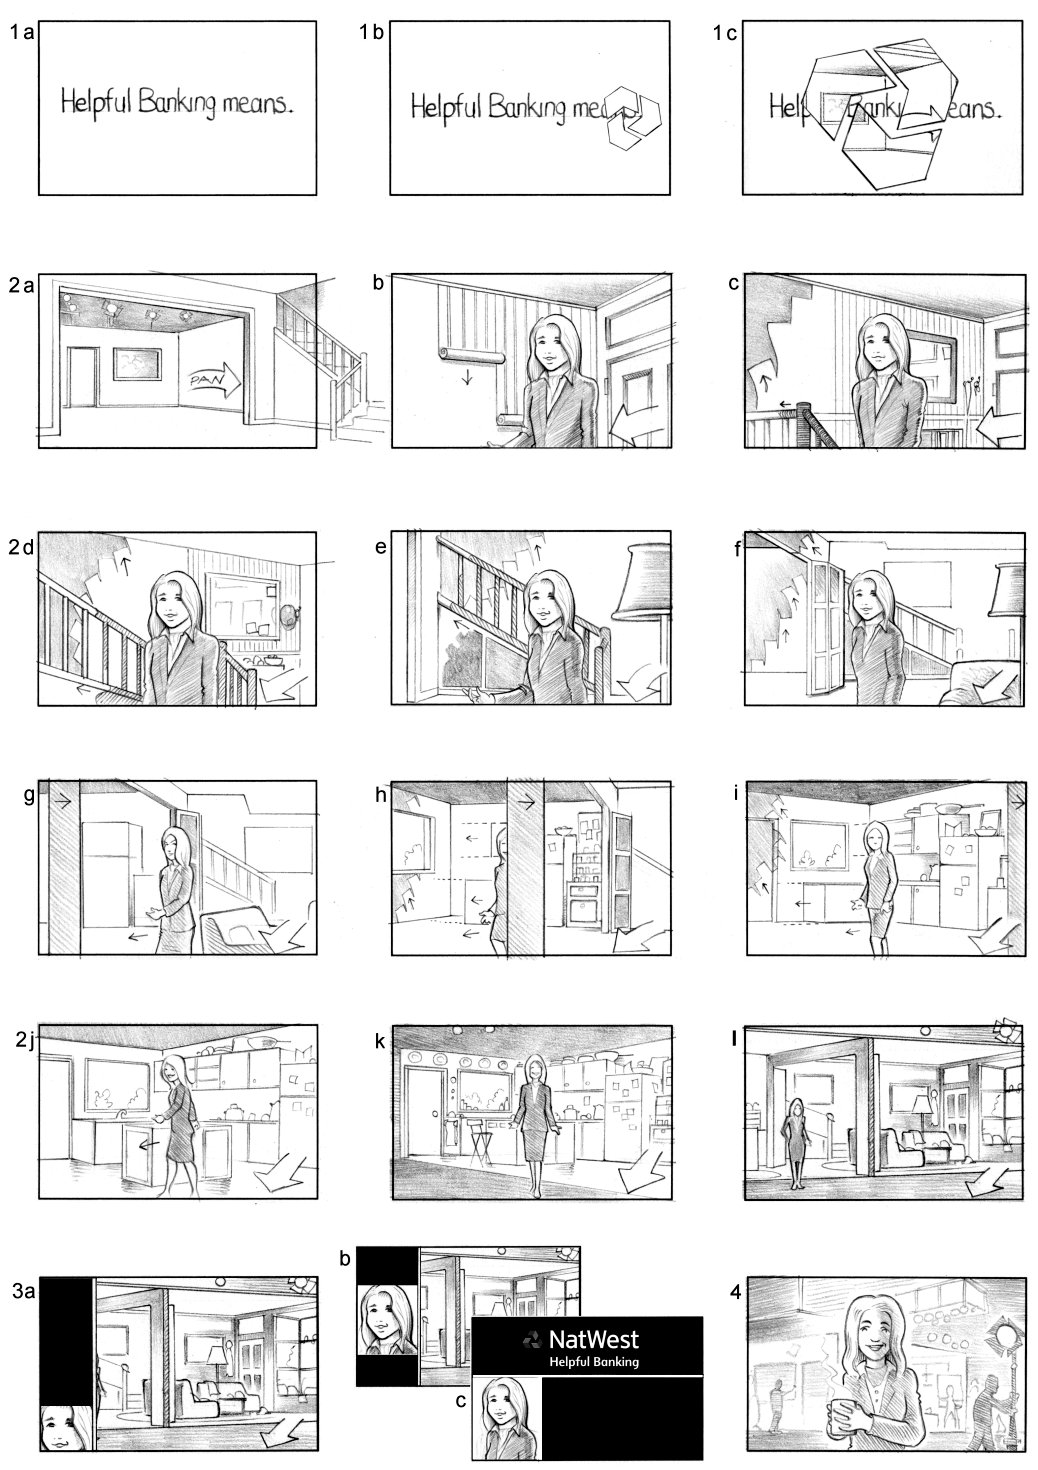 NAT WEST BANK STORYBOARD BY ANDY SPARROW